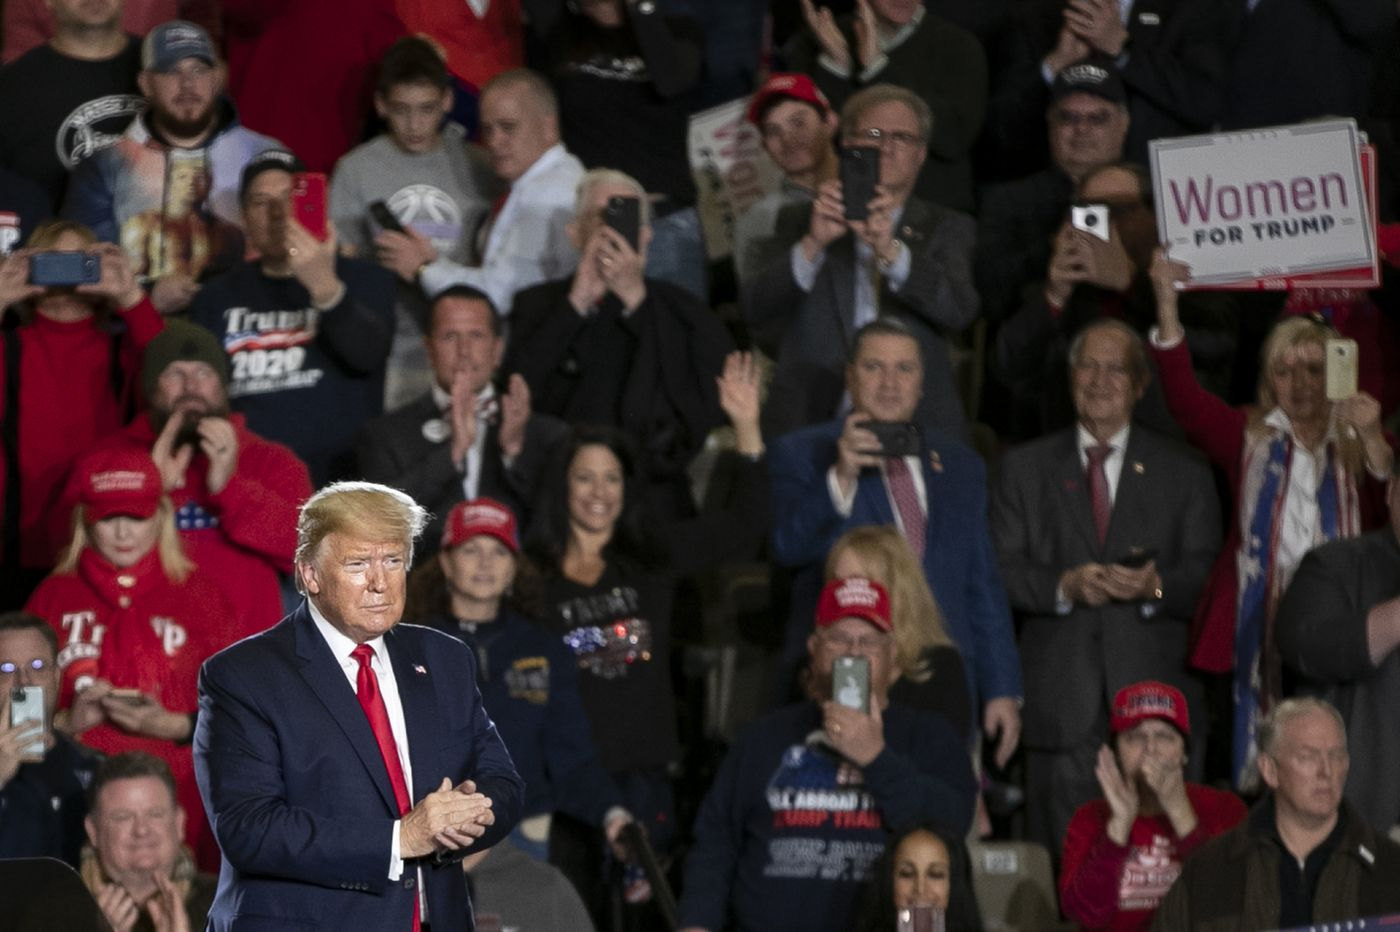 Trump makes case for reelection in Wildwood rally, blasting media and Democrats